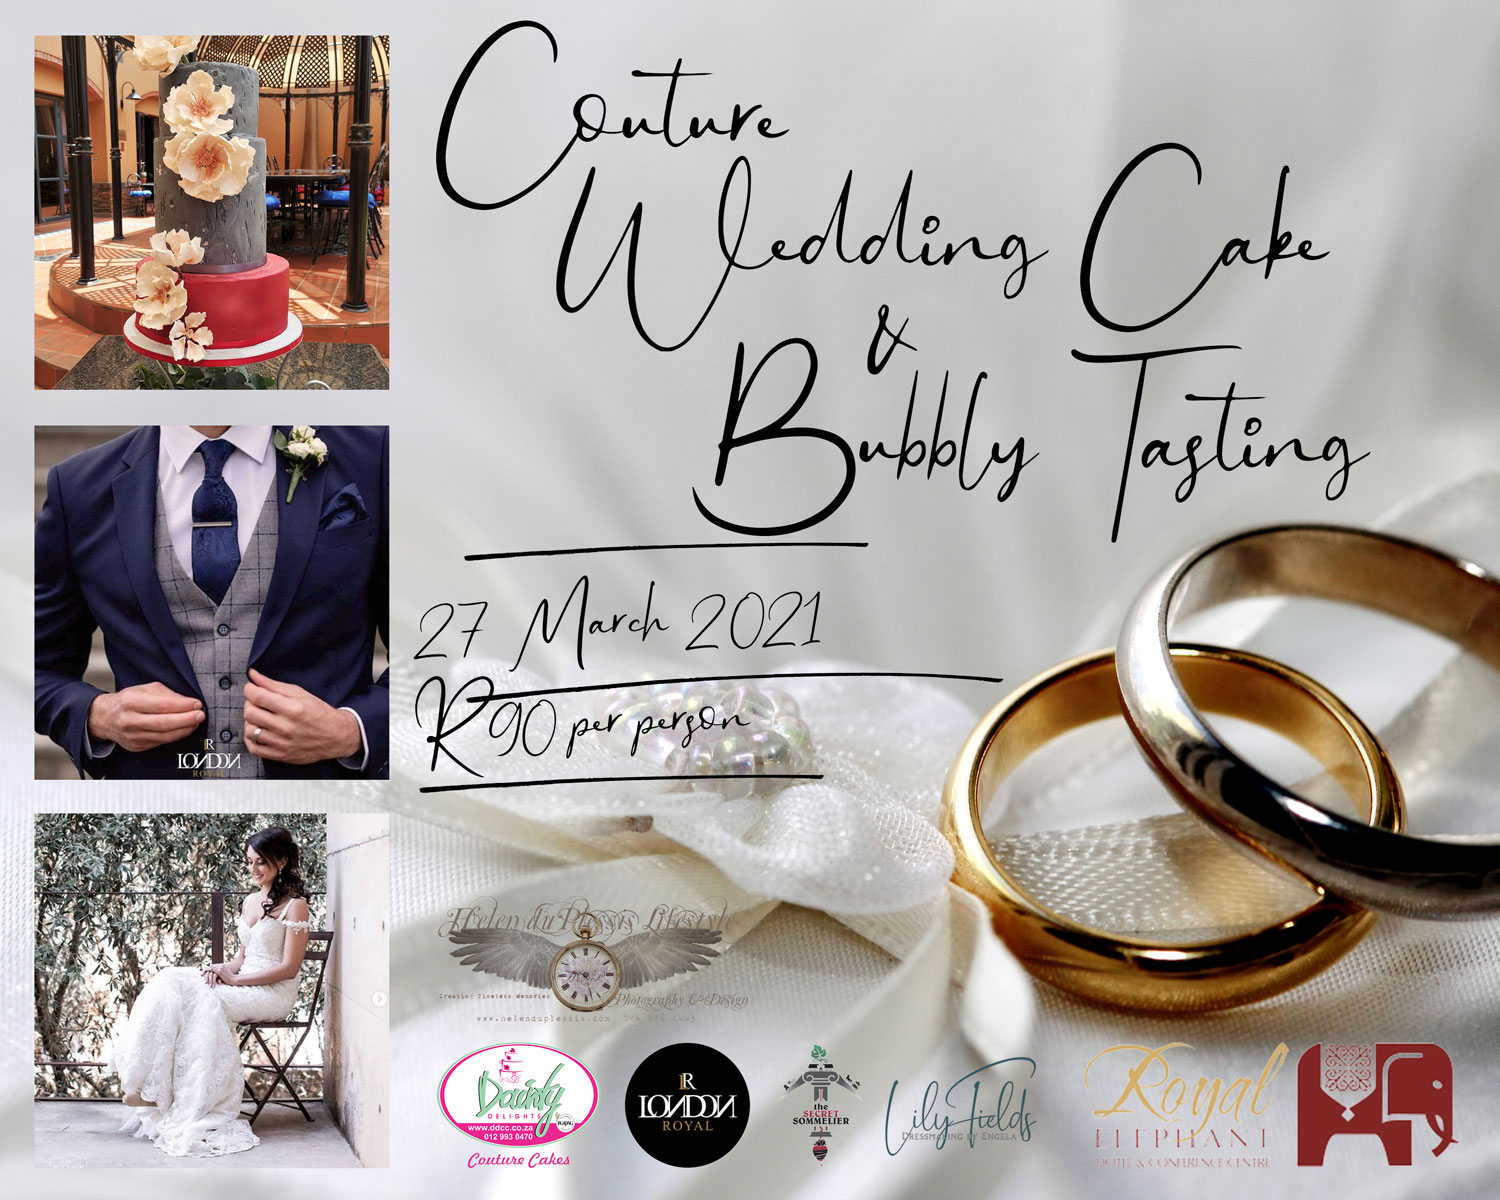 Couture Wedding Cake & Bubbly Tasting